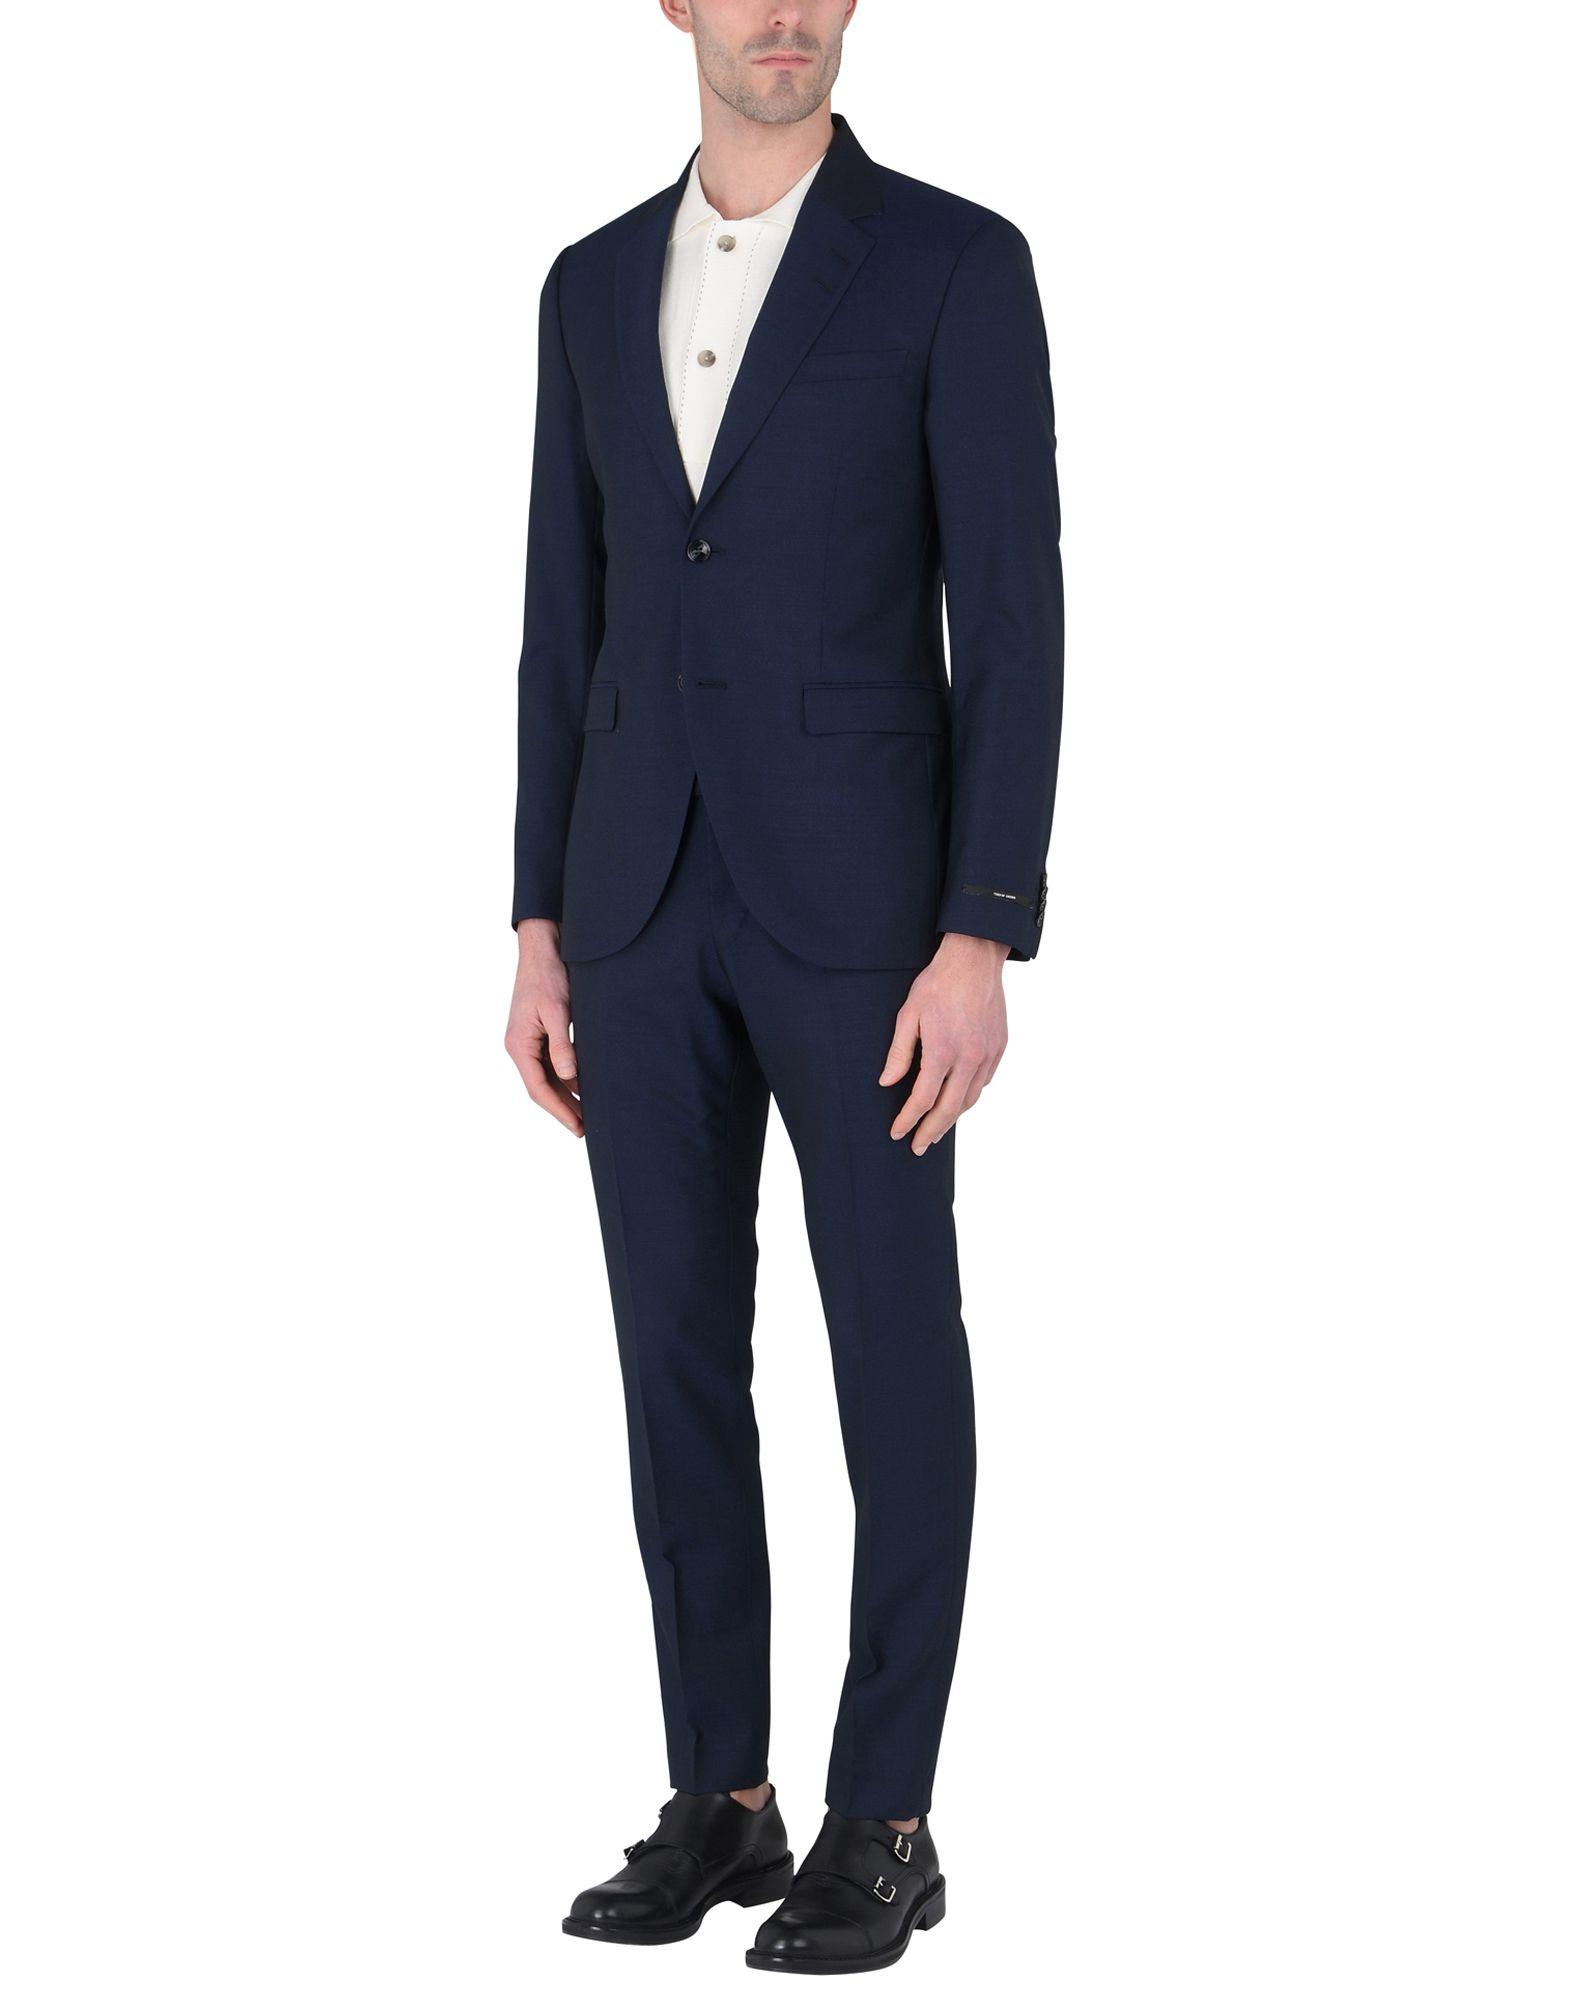 Tiger Of Sweden Suits In Dark Blue